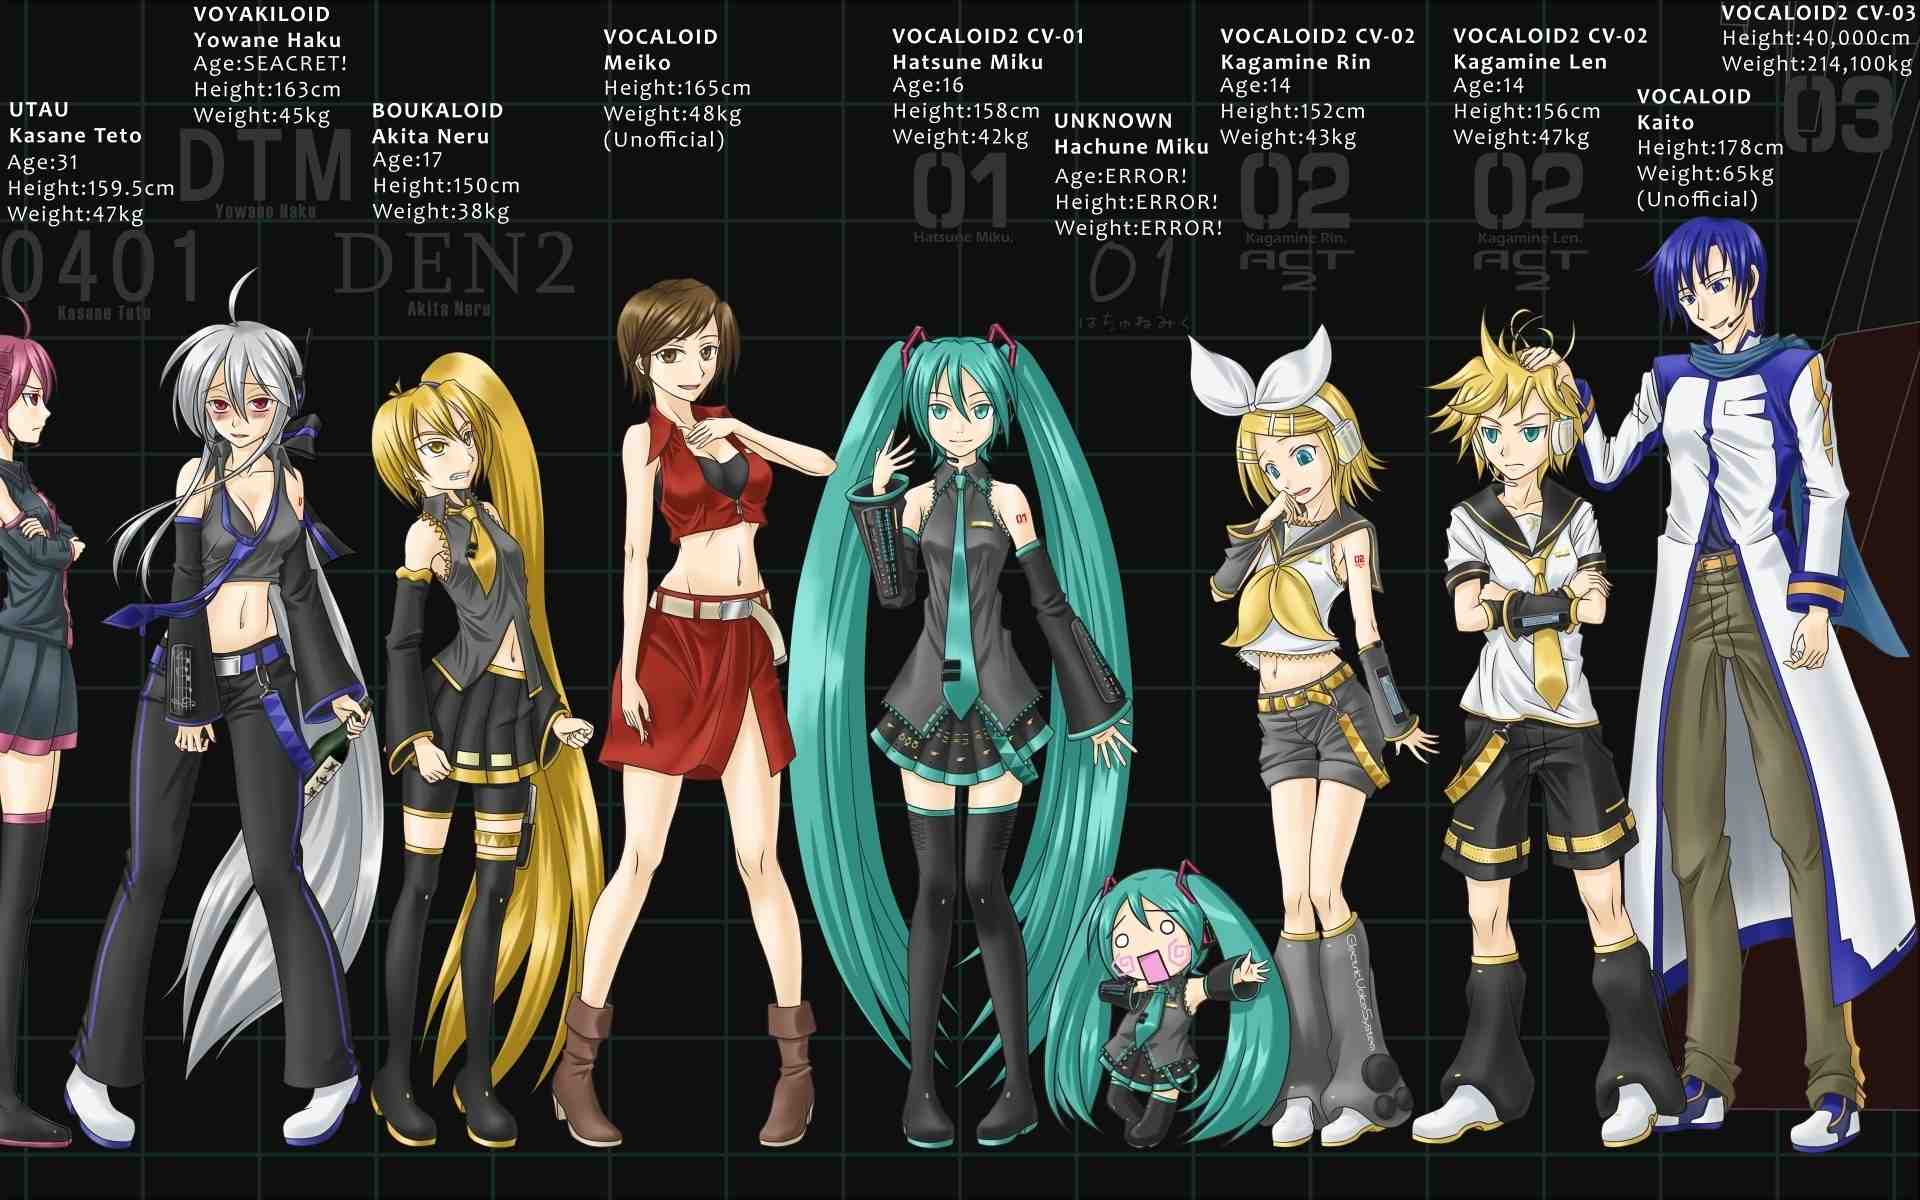 Hatsune Miku shows up in new vocaloid track, Horizon